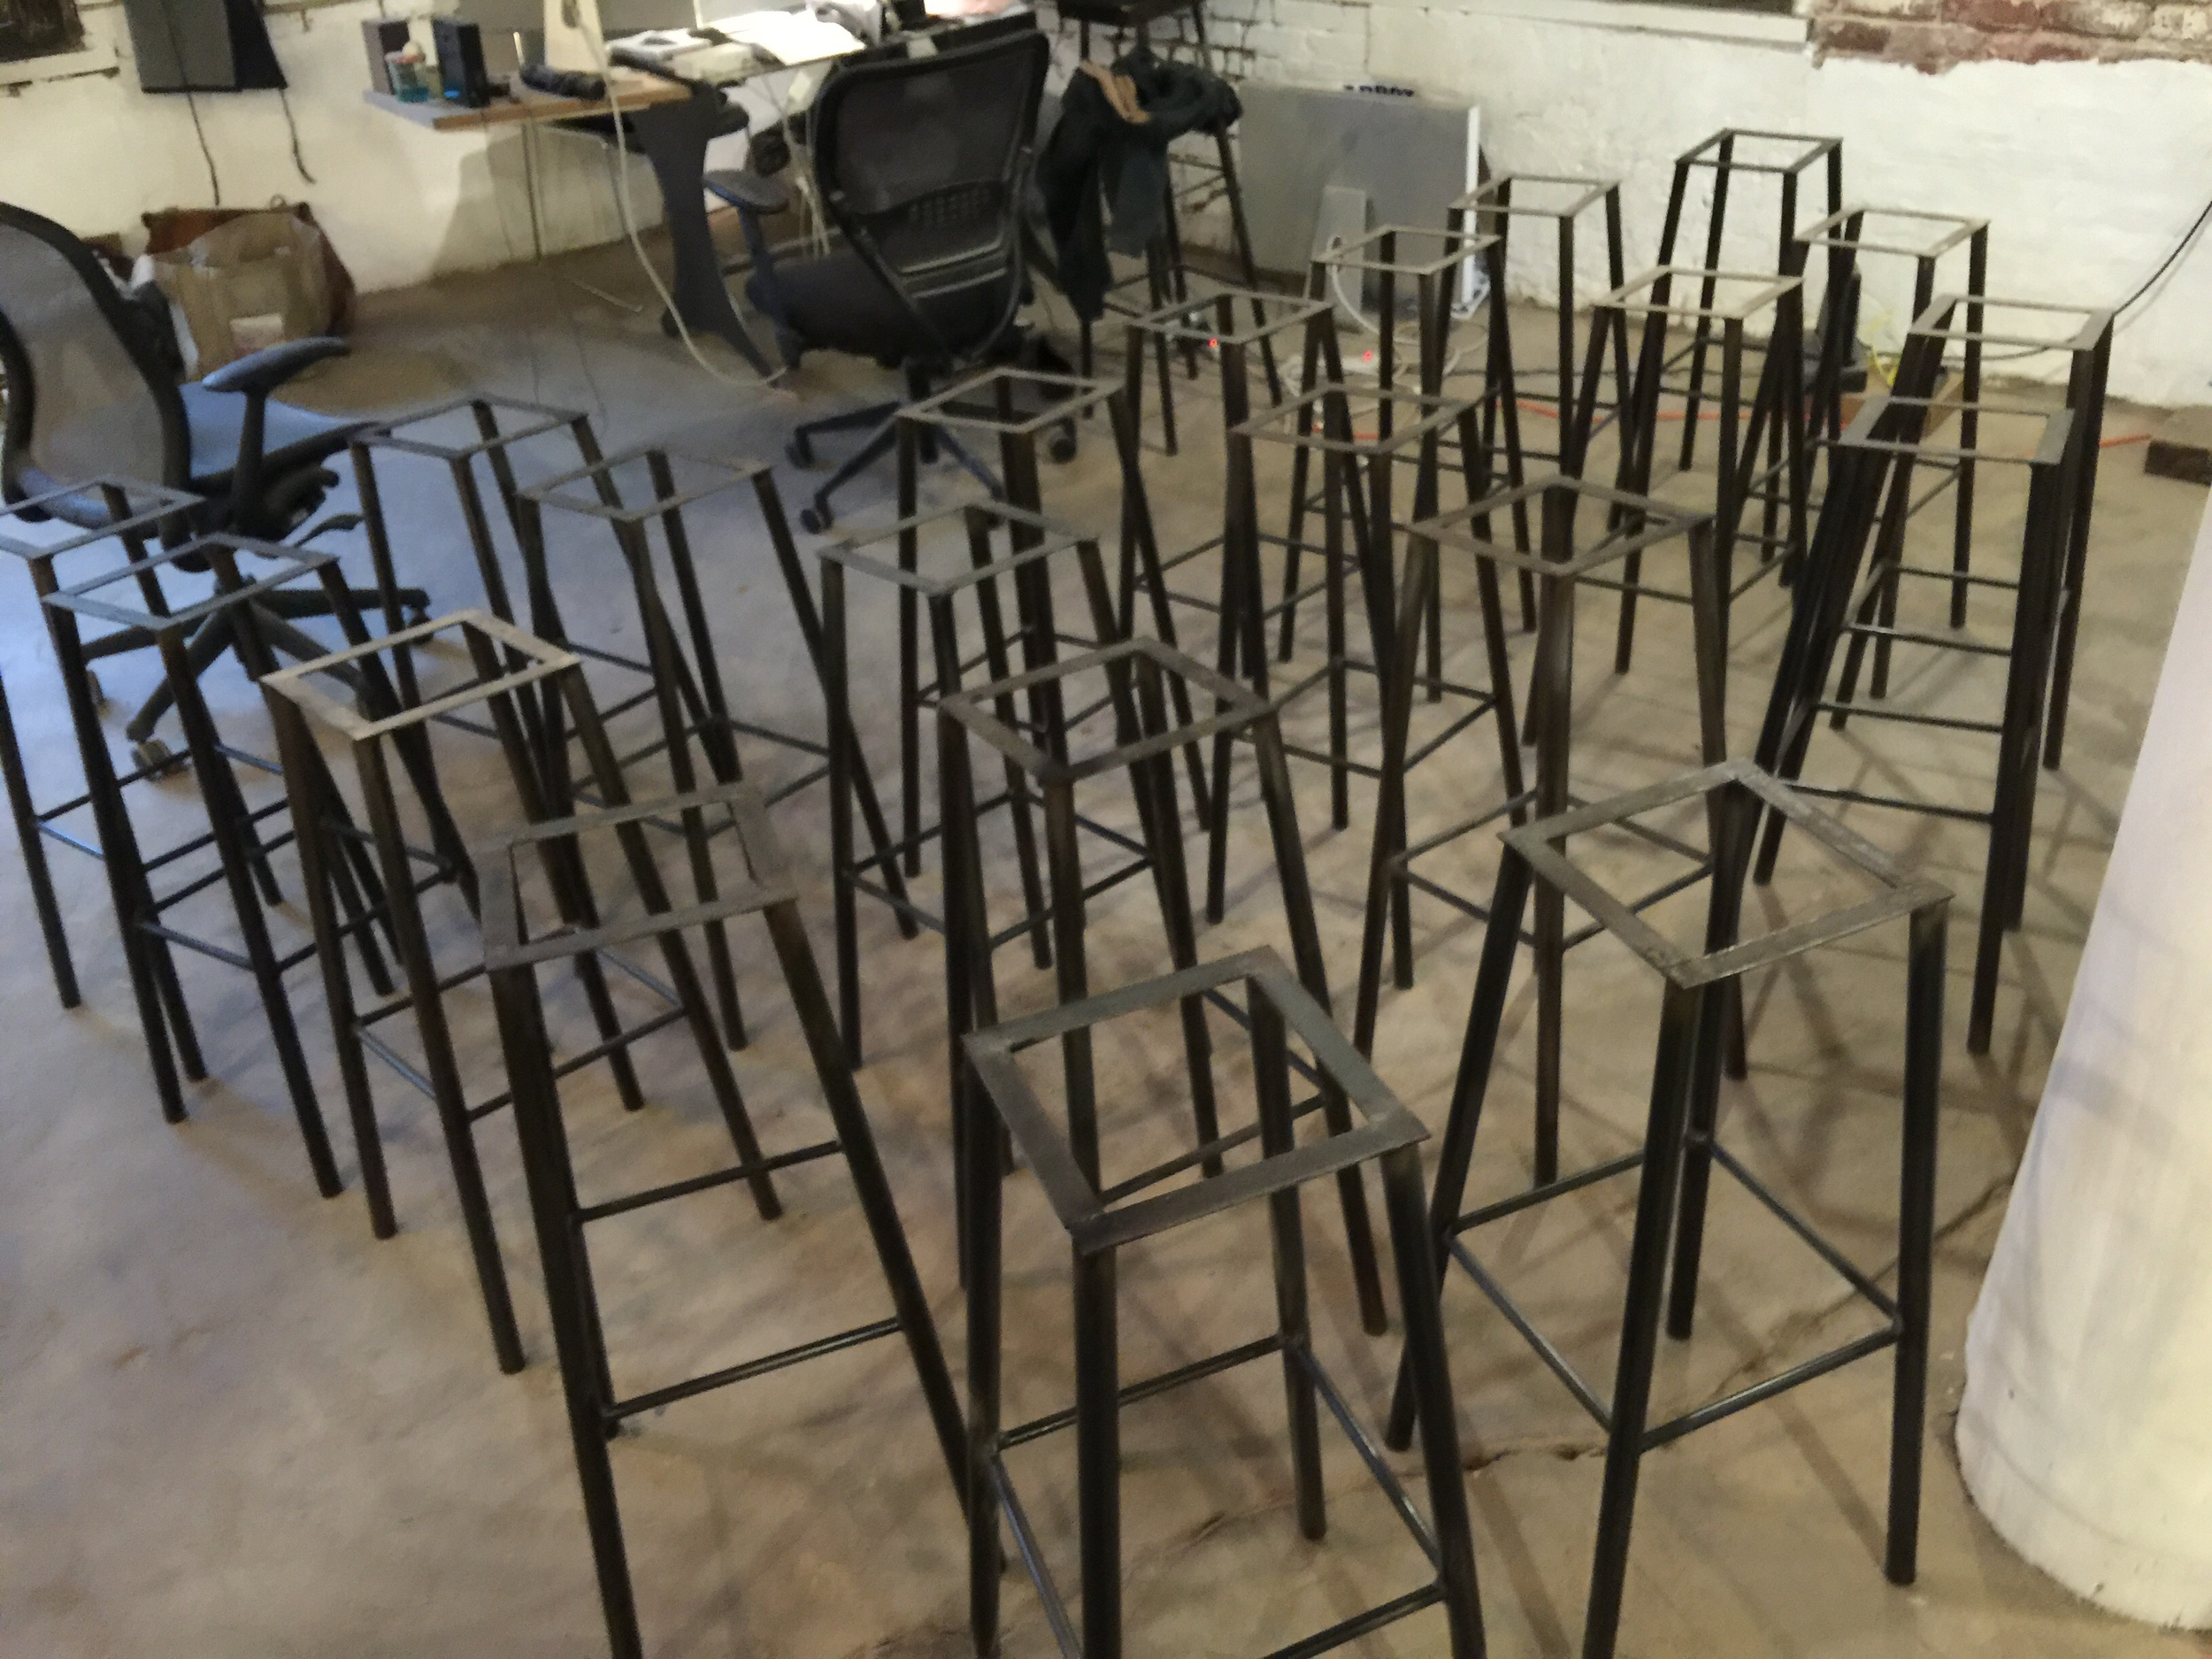 32 stools for a restaurant in Brooklyn